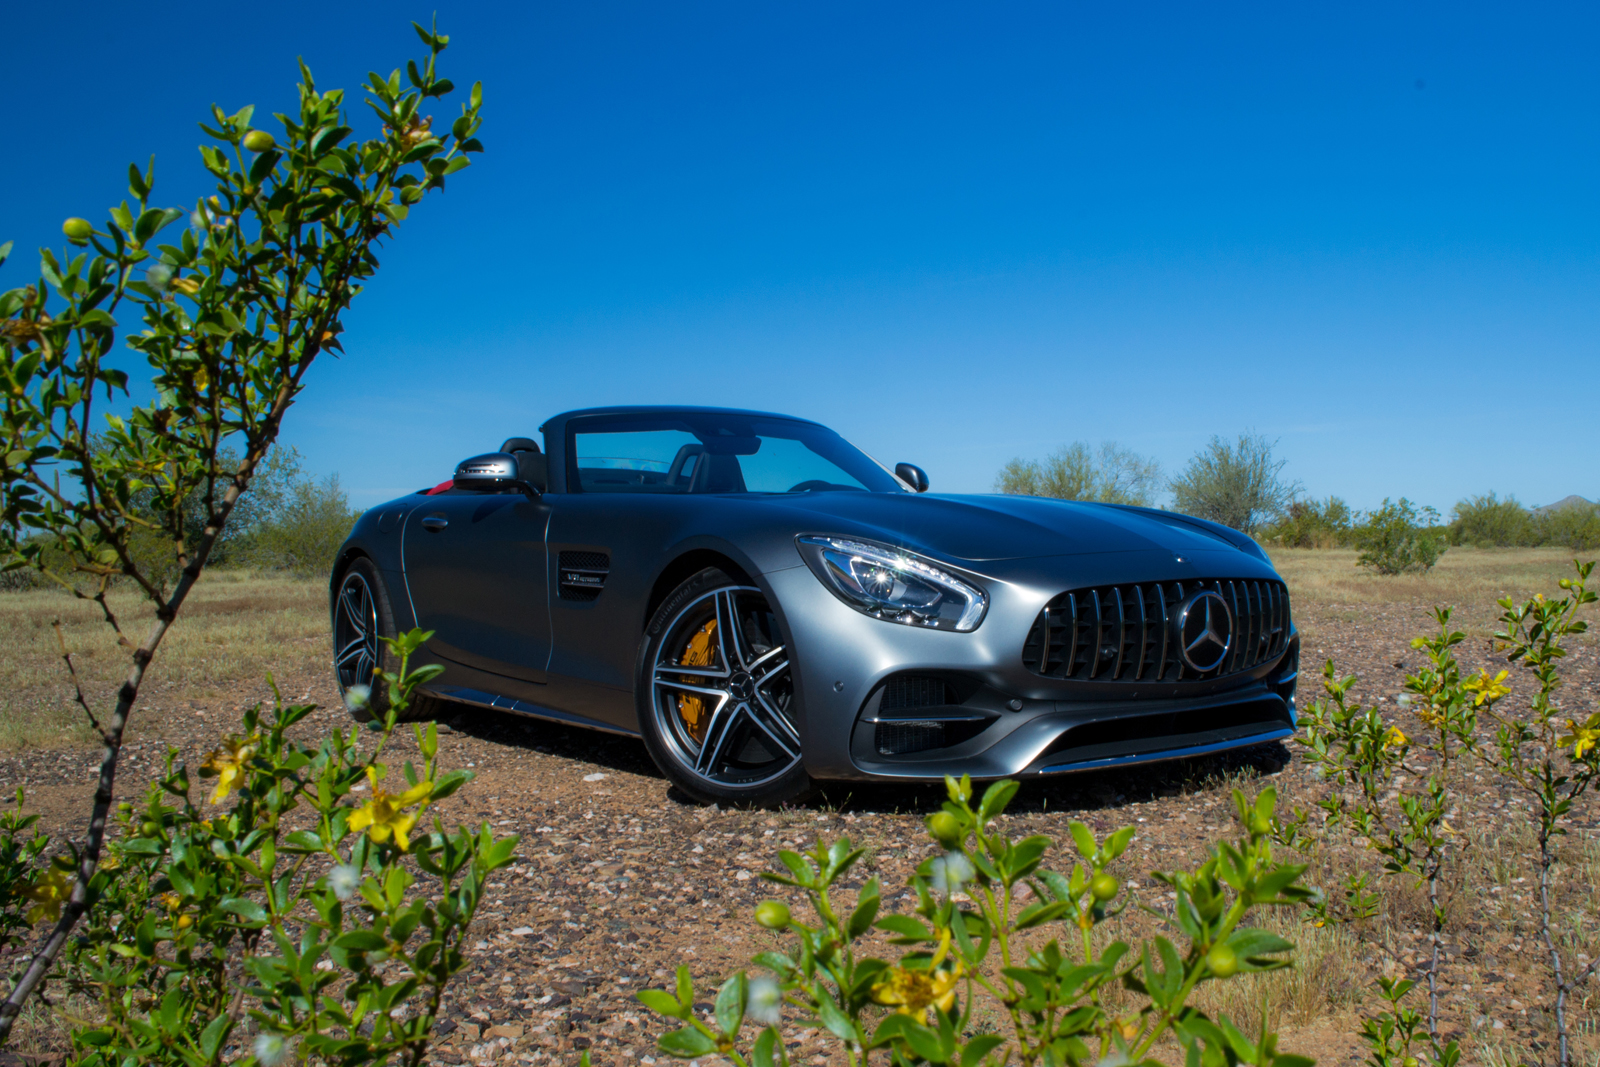 Mercedes Amg Gt Sports Car >> 2018 Mercedes-AMG GT Roadster Review - AutoGuide.com